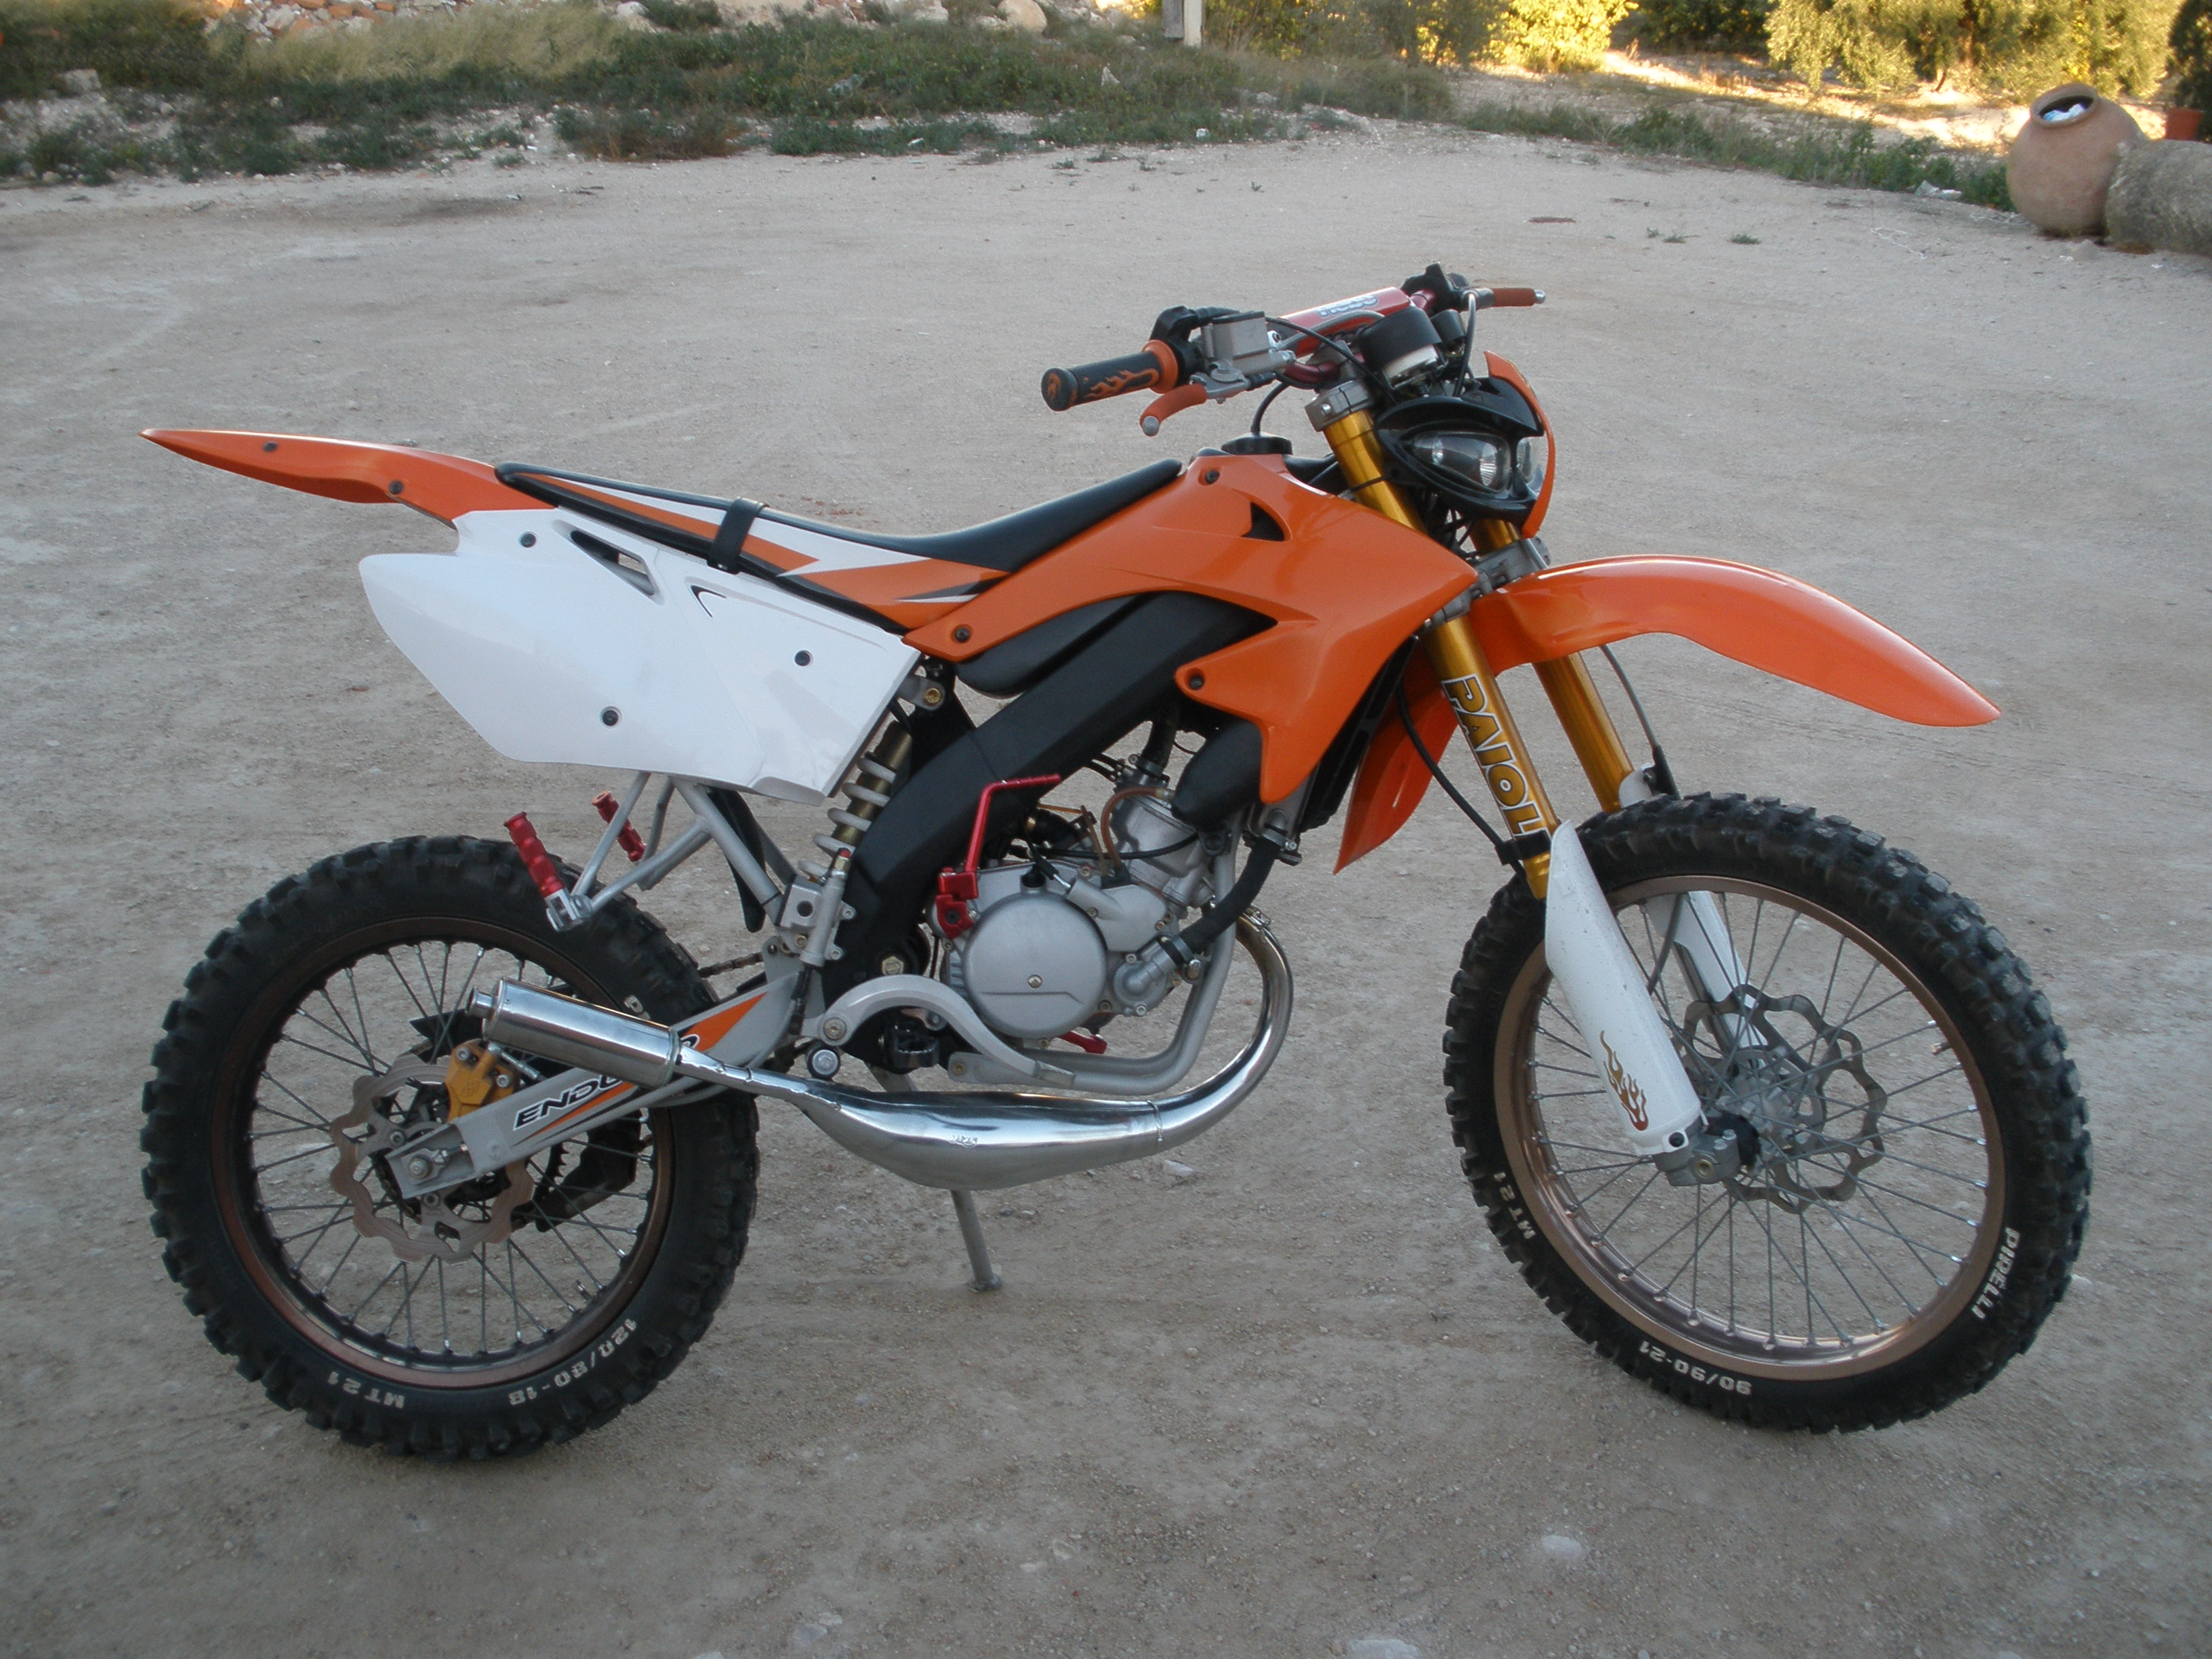 Motorhispania Ryz 50 Urban Bike 2007 images #112418